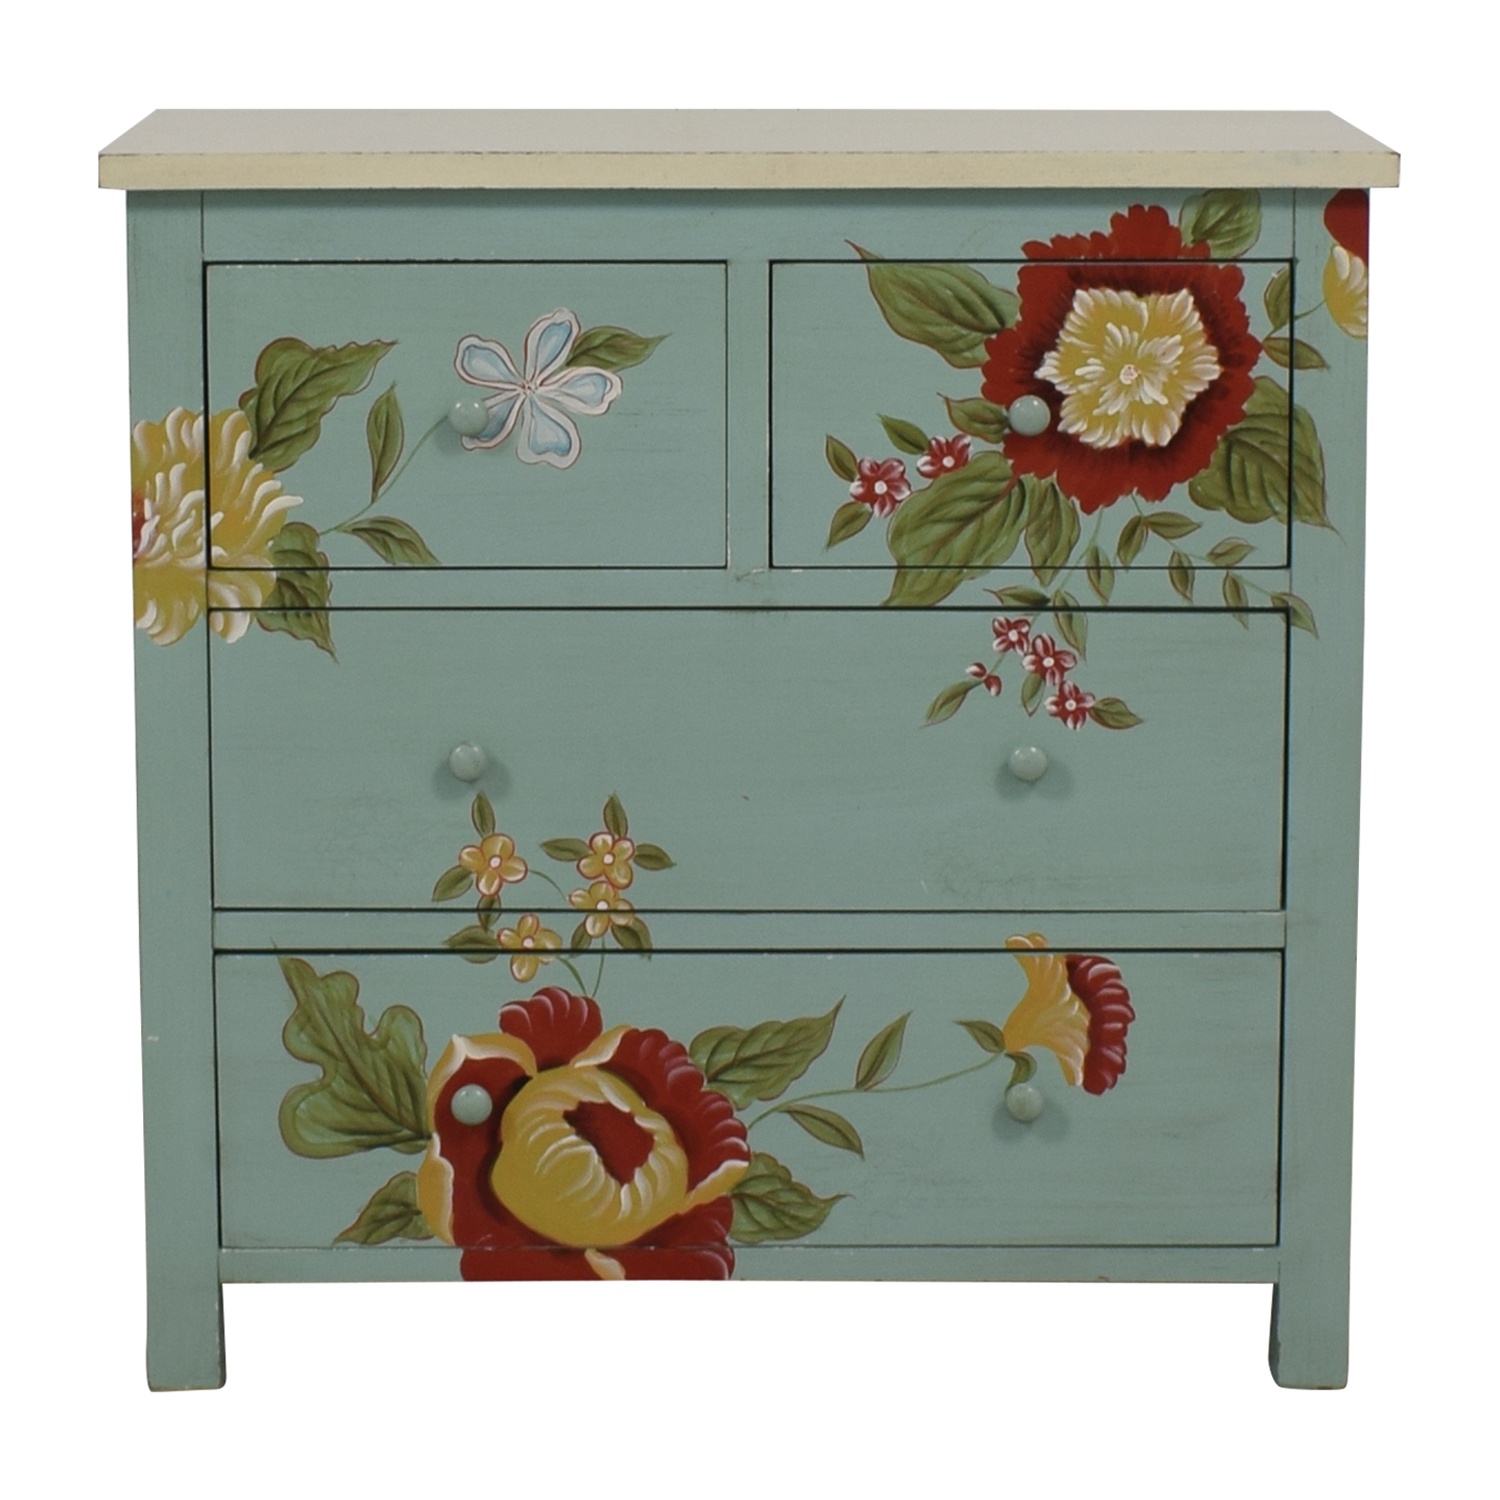 Sterling Industries Sterling Industries Custom Four Drawer Painted Wood Dresser second hand